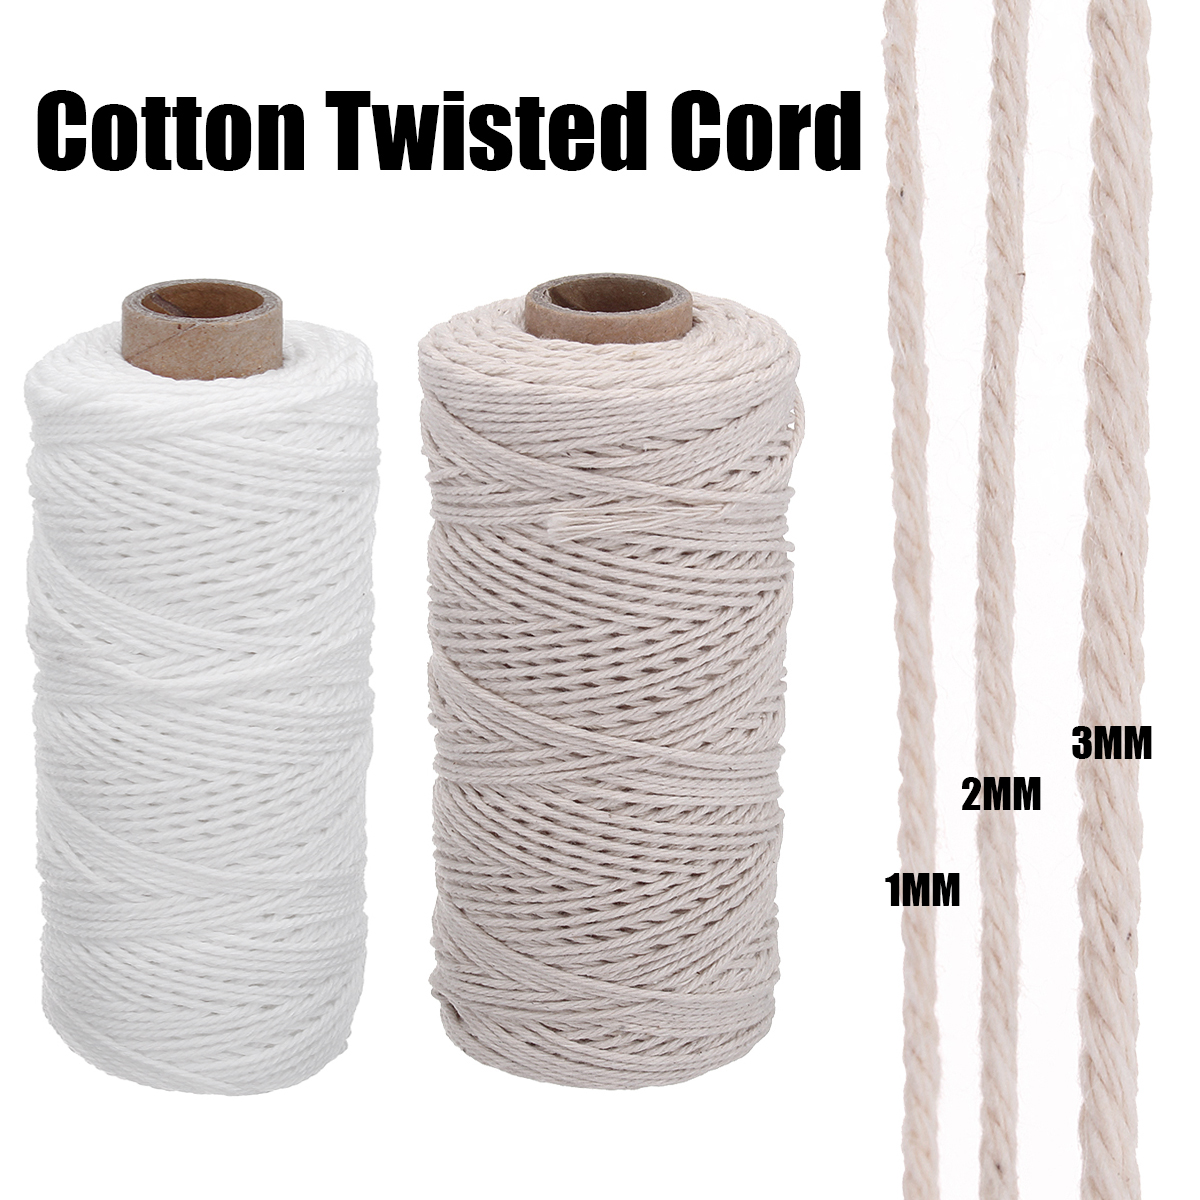 ALI shop ...  ... 32885065889 ... 4 ... 3 Size 1/2/3mm Braided Soft Beige Twisted Cotton Rope Cord Craft Macrame String DIY Handmade Tying Thread Macrame Cord Rope   ...